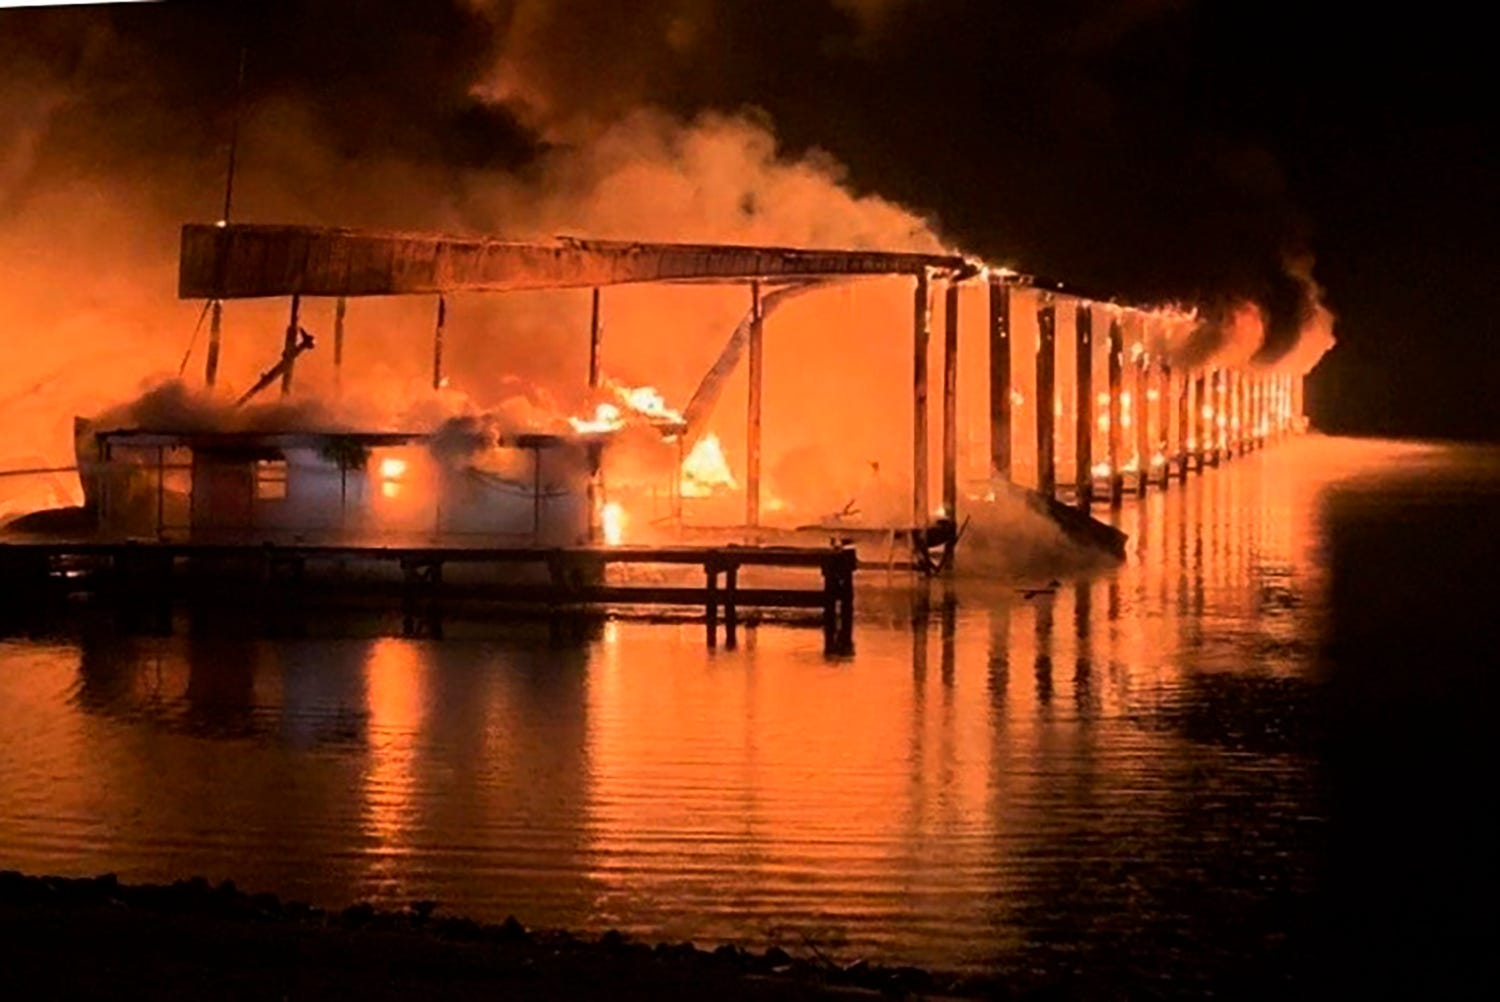 Alabama fire chief confirms 8 deaths after fire destroys 35 boats